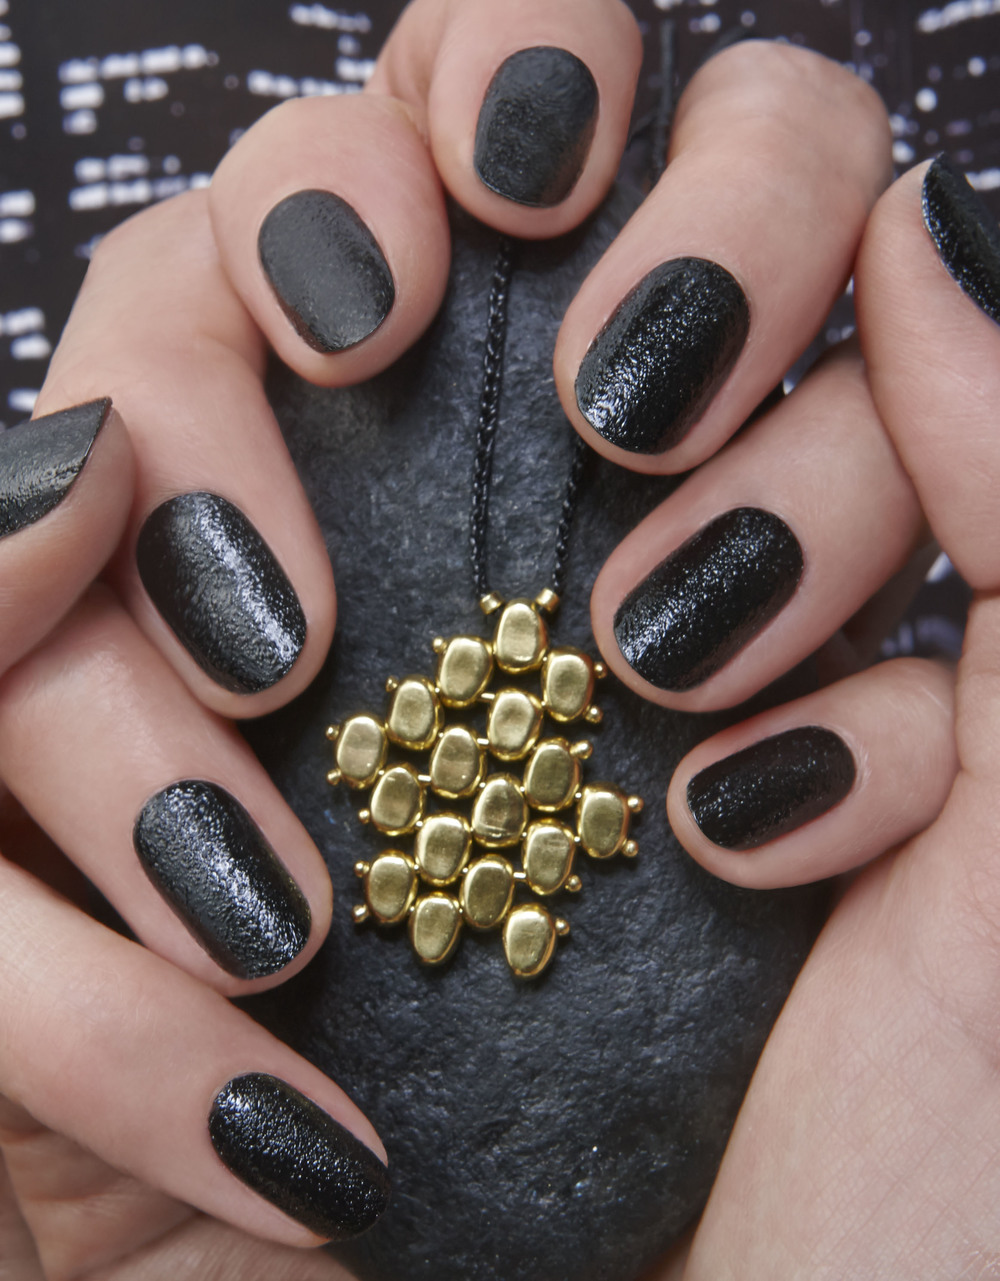 The black and textured Chamonix nail polish from Jin Soon's 'Tout Ensemble' collection.